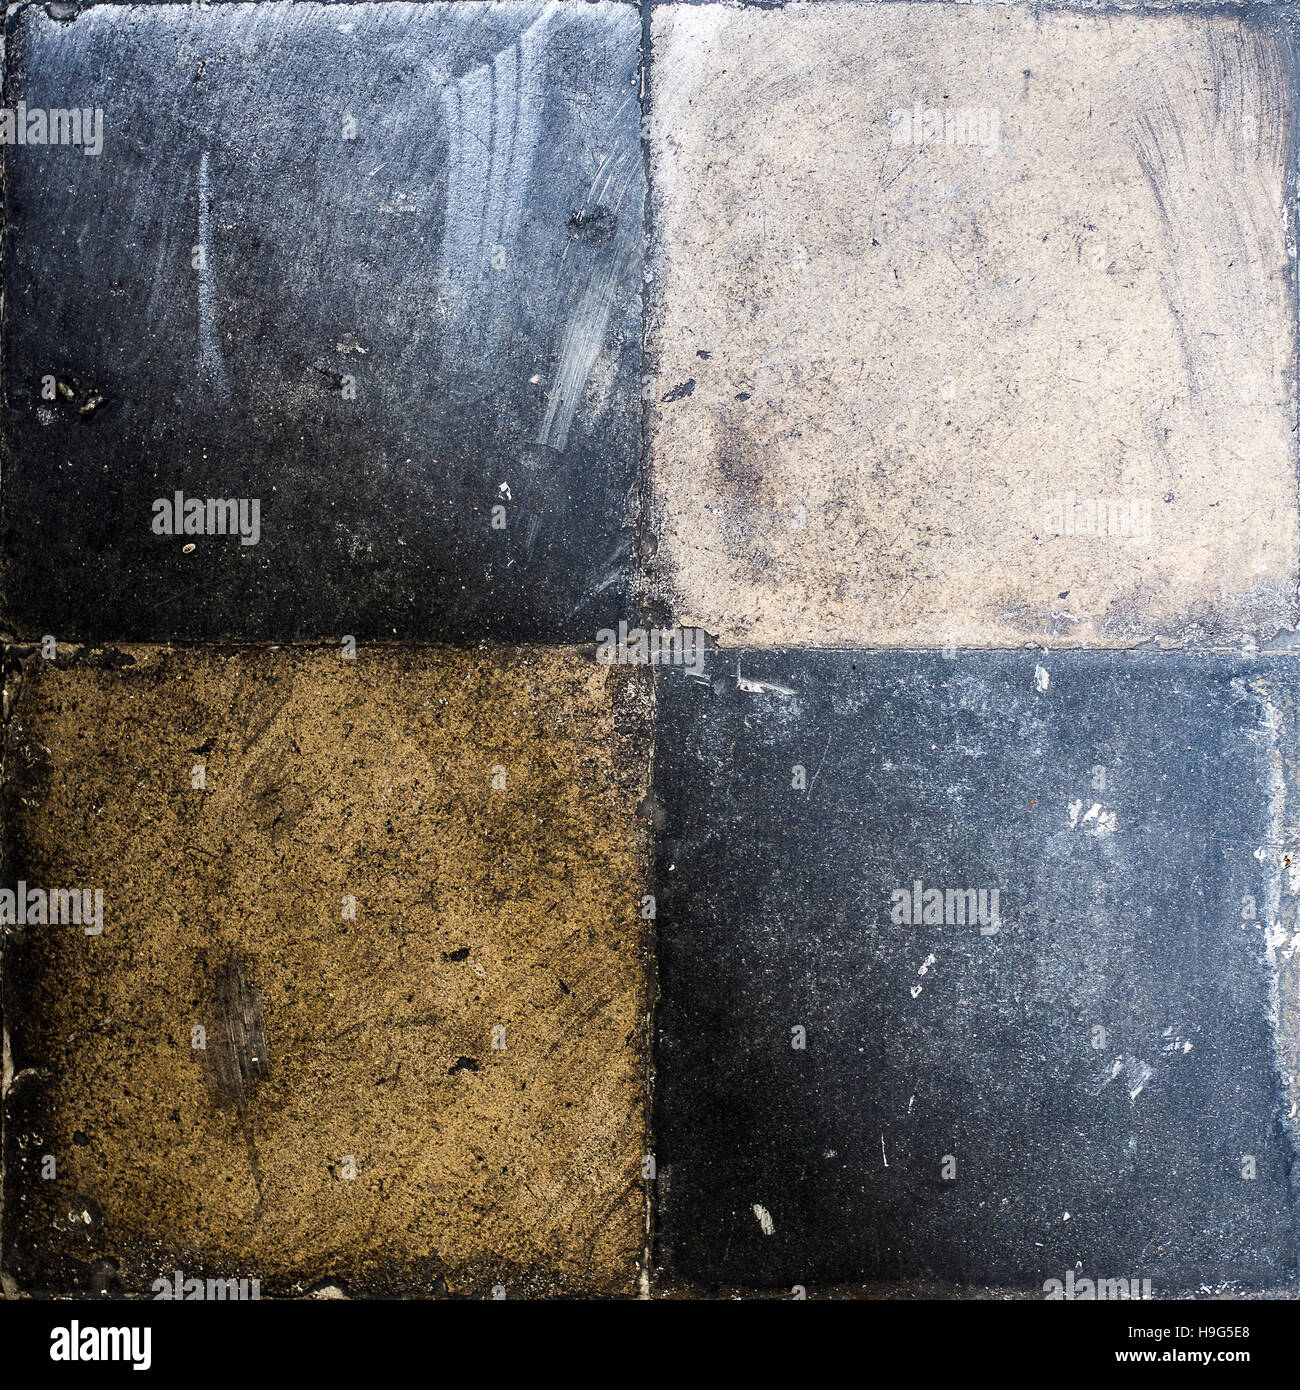 Very Old Retro Floor Tiles, circa 1920, four of them on square image - Stock Image